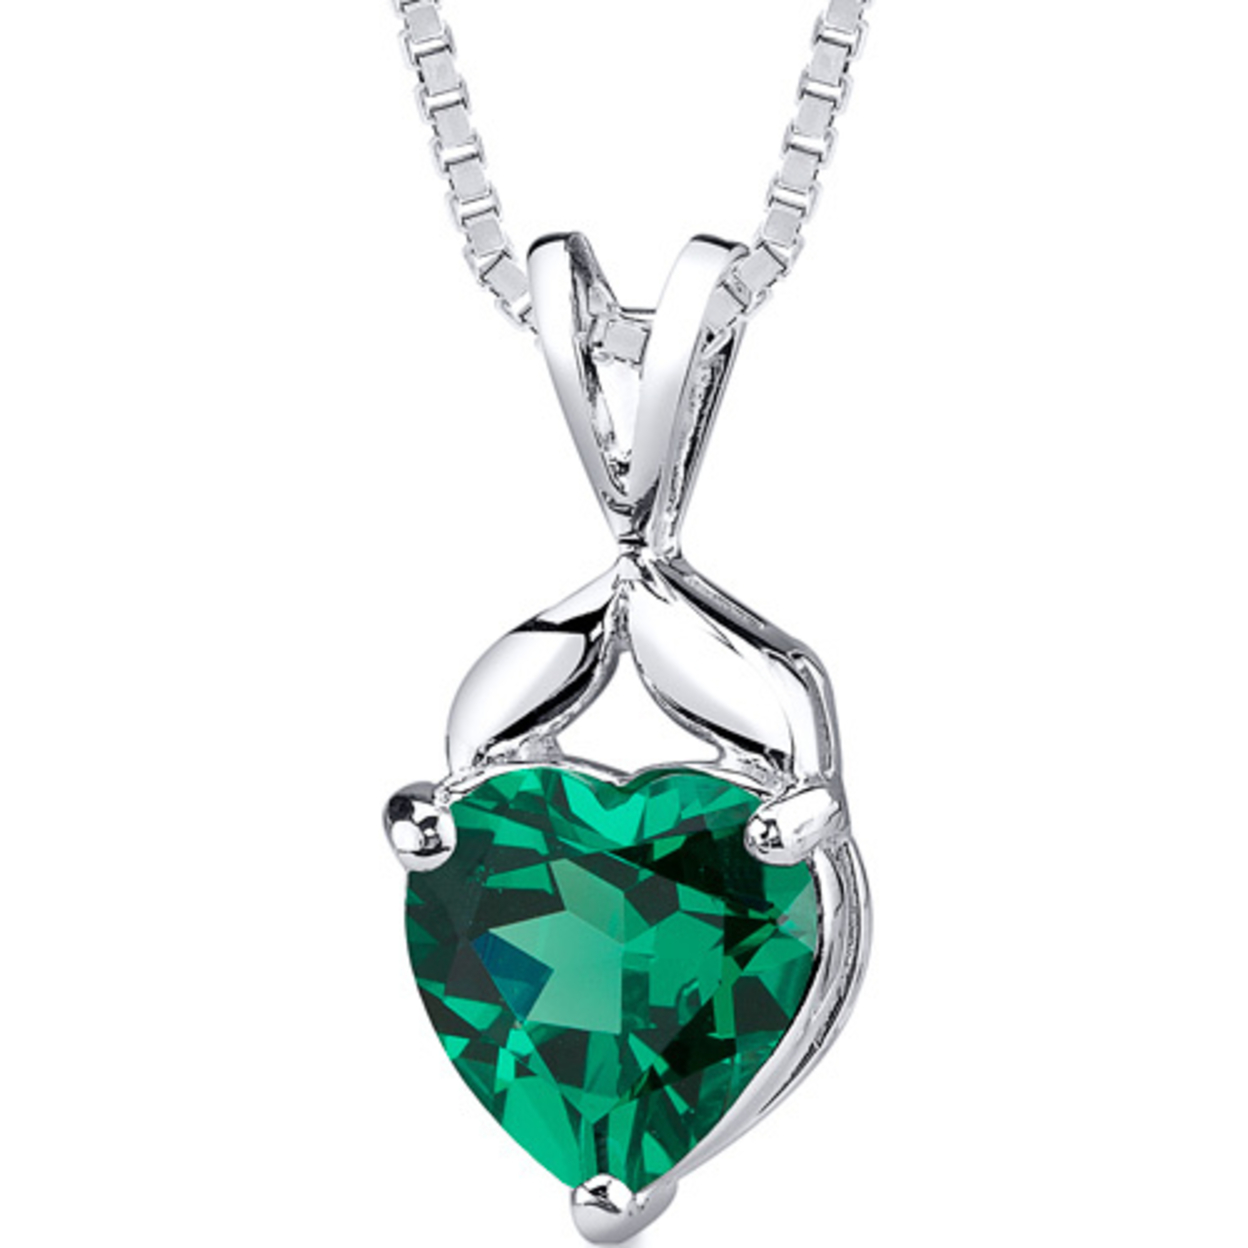 Oravo 3.00 Carat T.g.w. Heart Shape Emerald Rhodium Over Sterling Silver Pendant, 18""